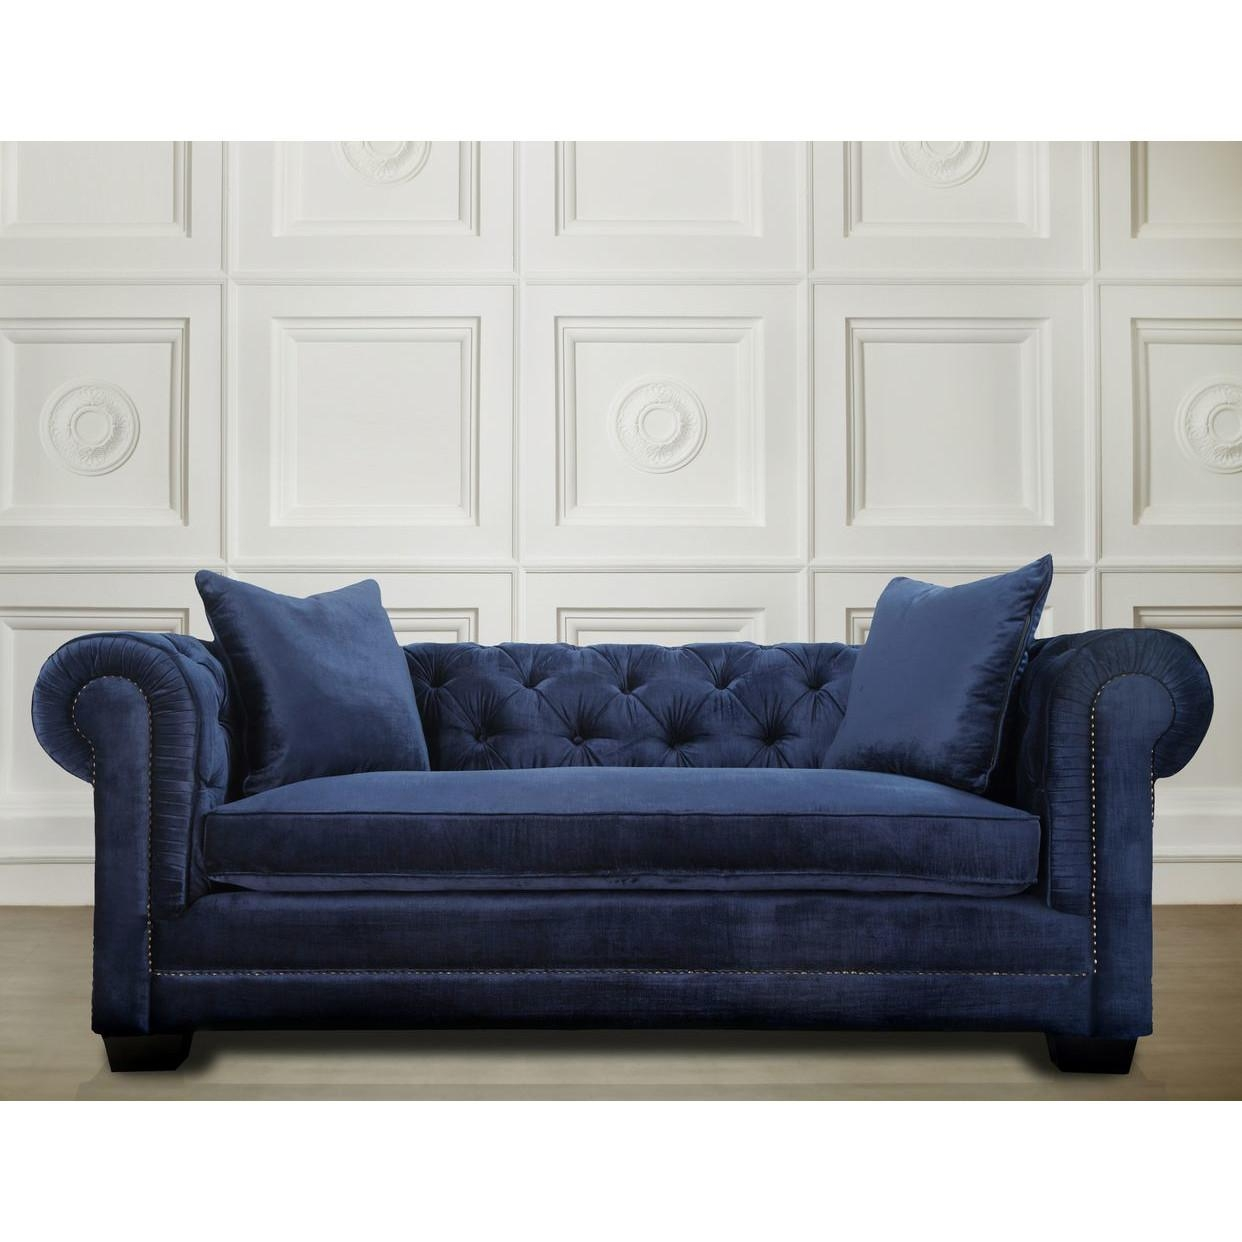 Sofas Center : Furniture Of America Sm3071 Sf Cornelia With Blue Jean Sofas (View 16 of 20)